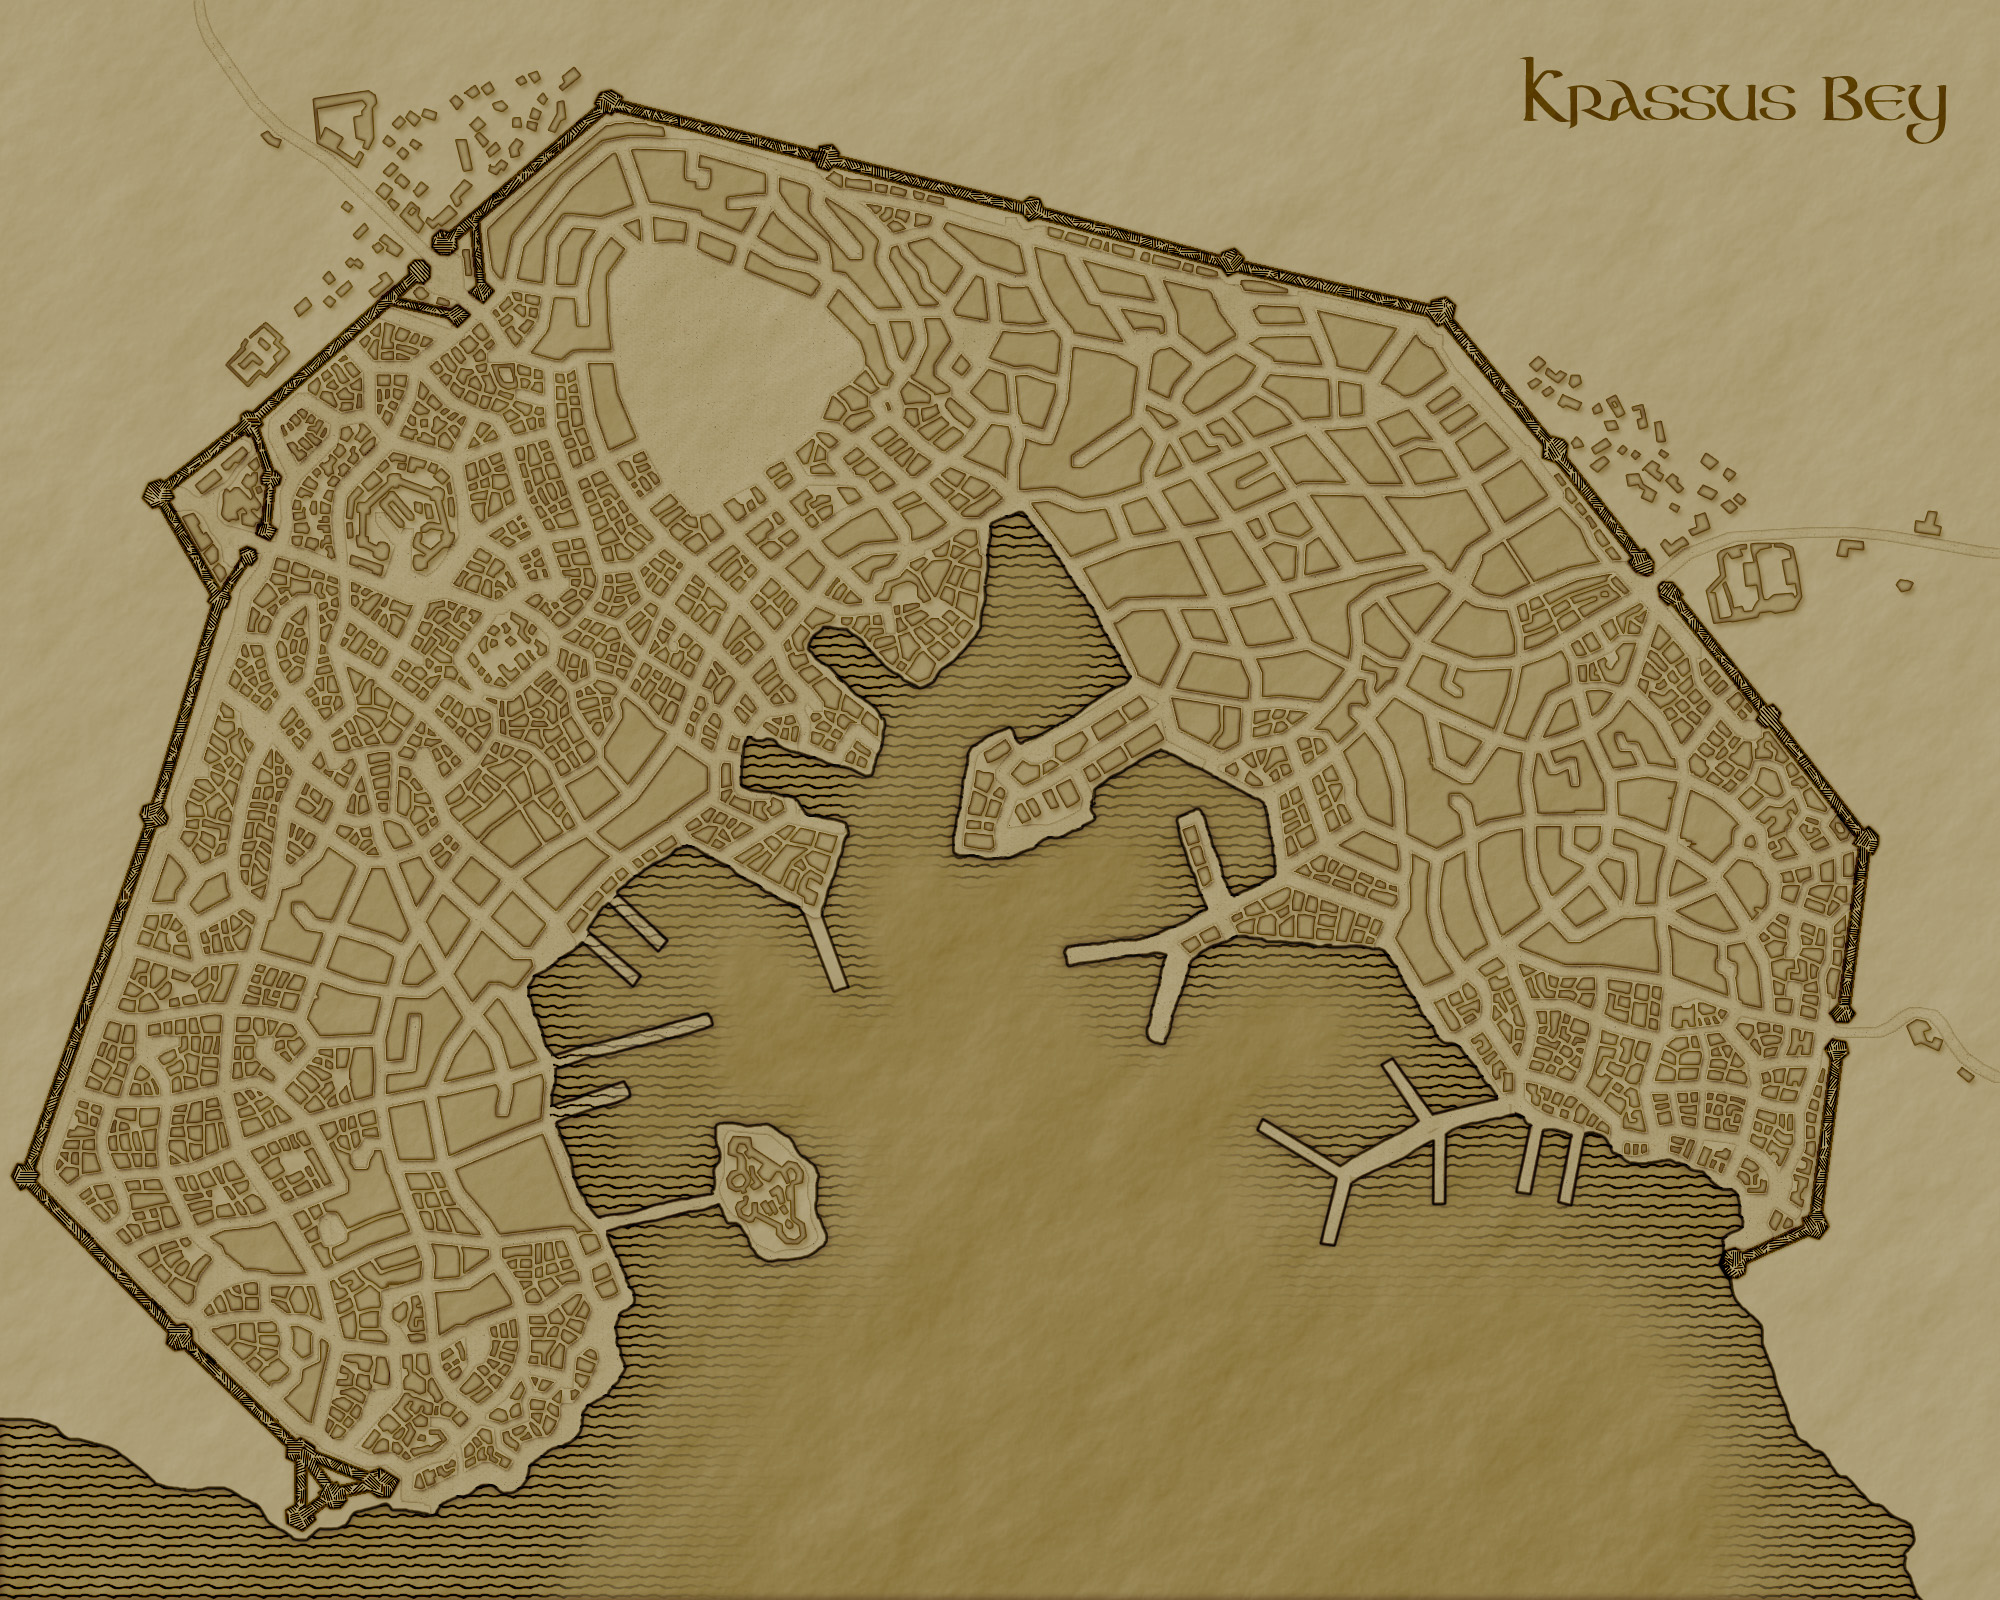 Krassus Bey map